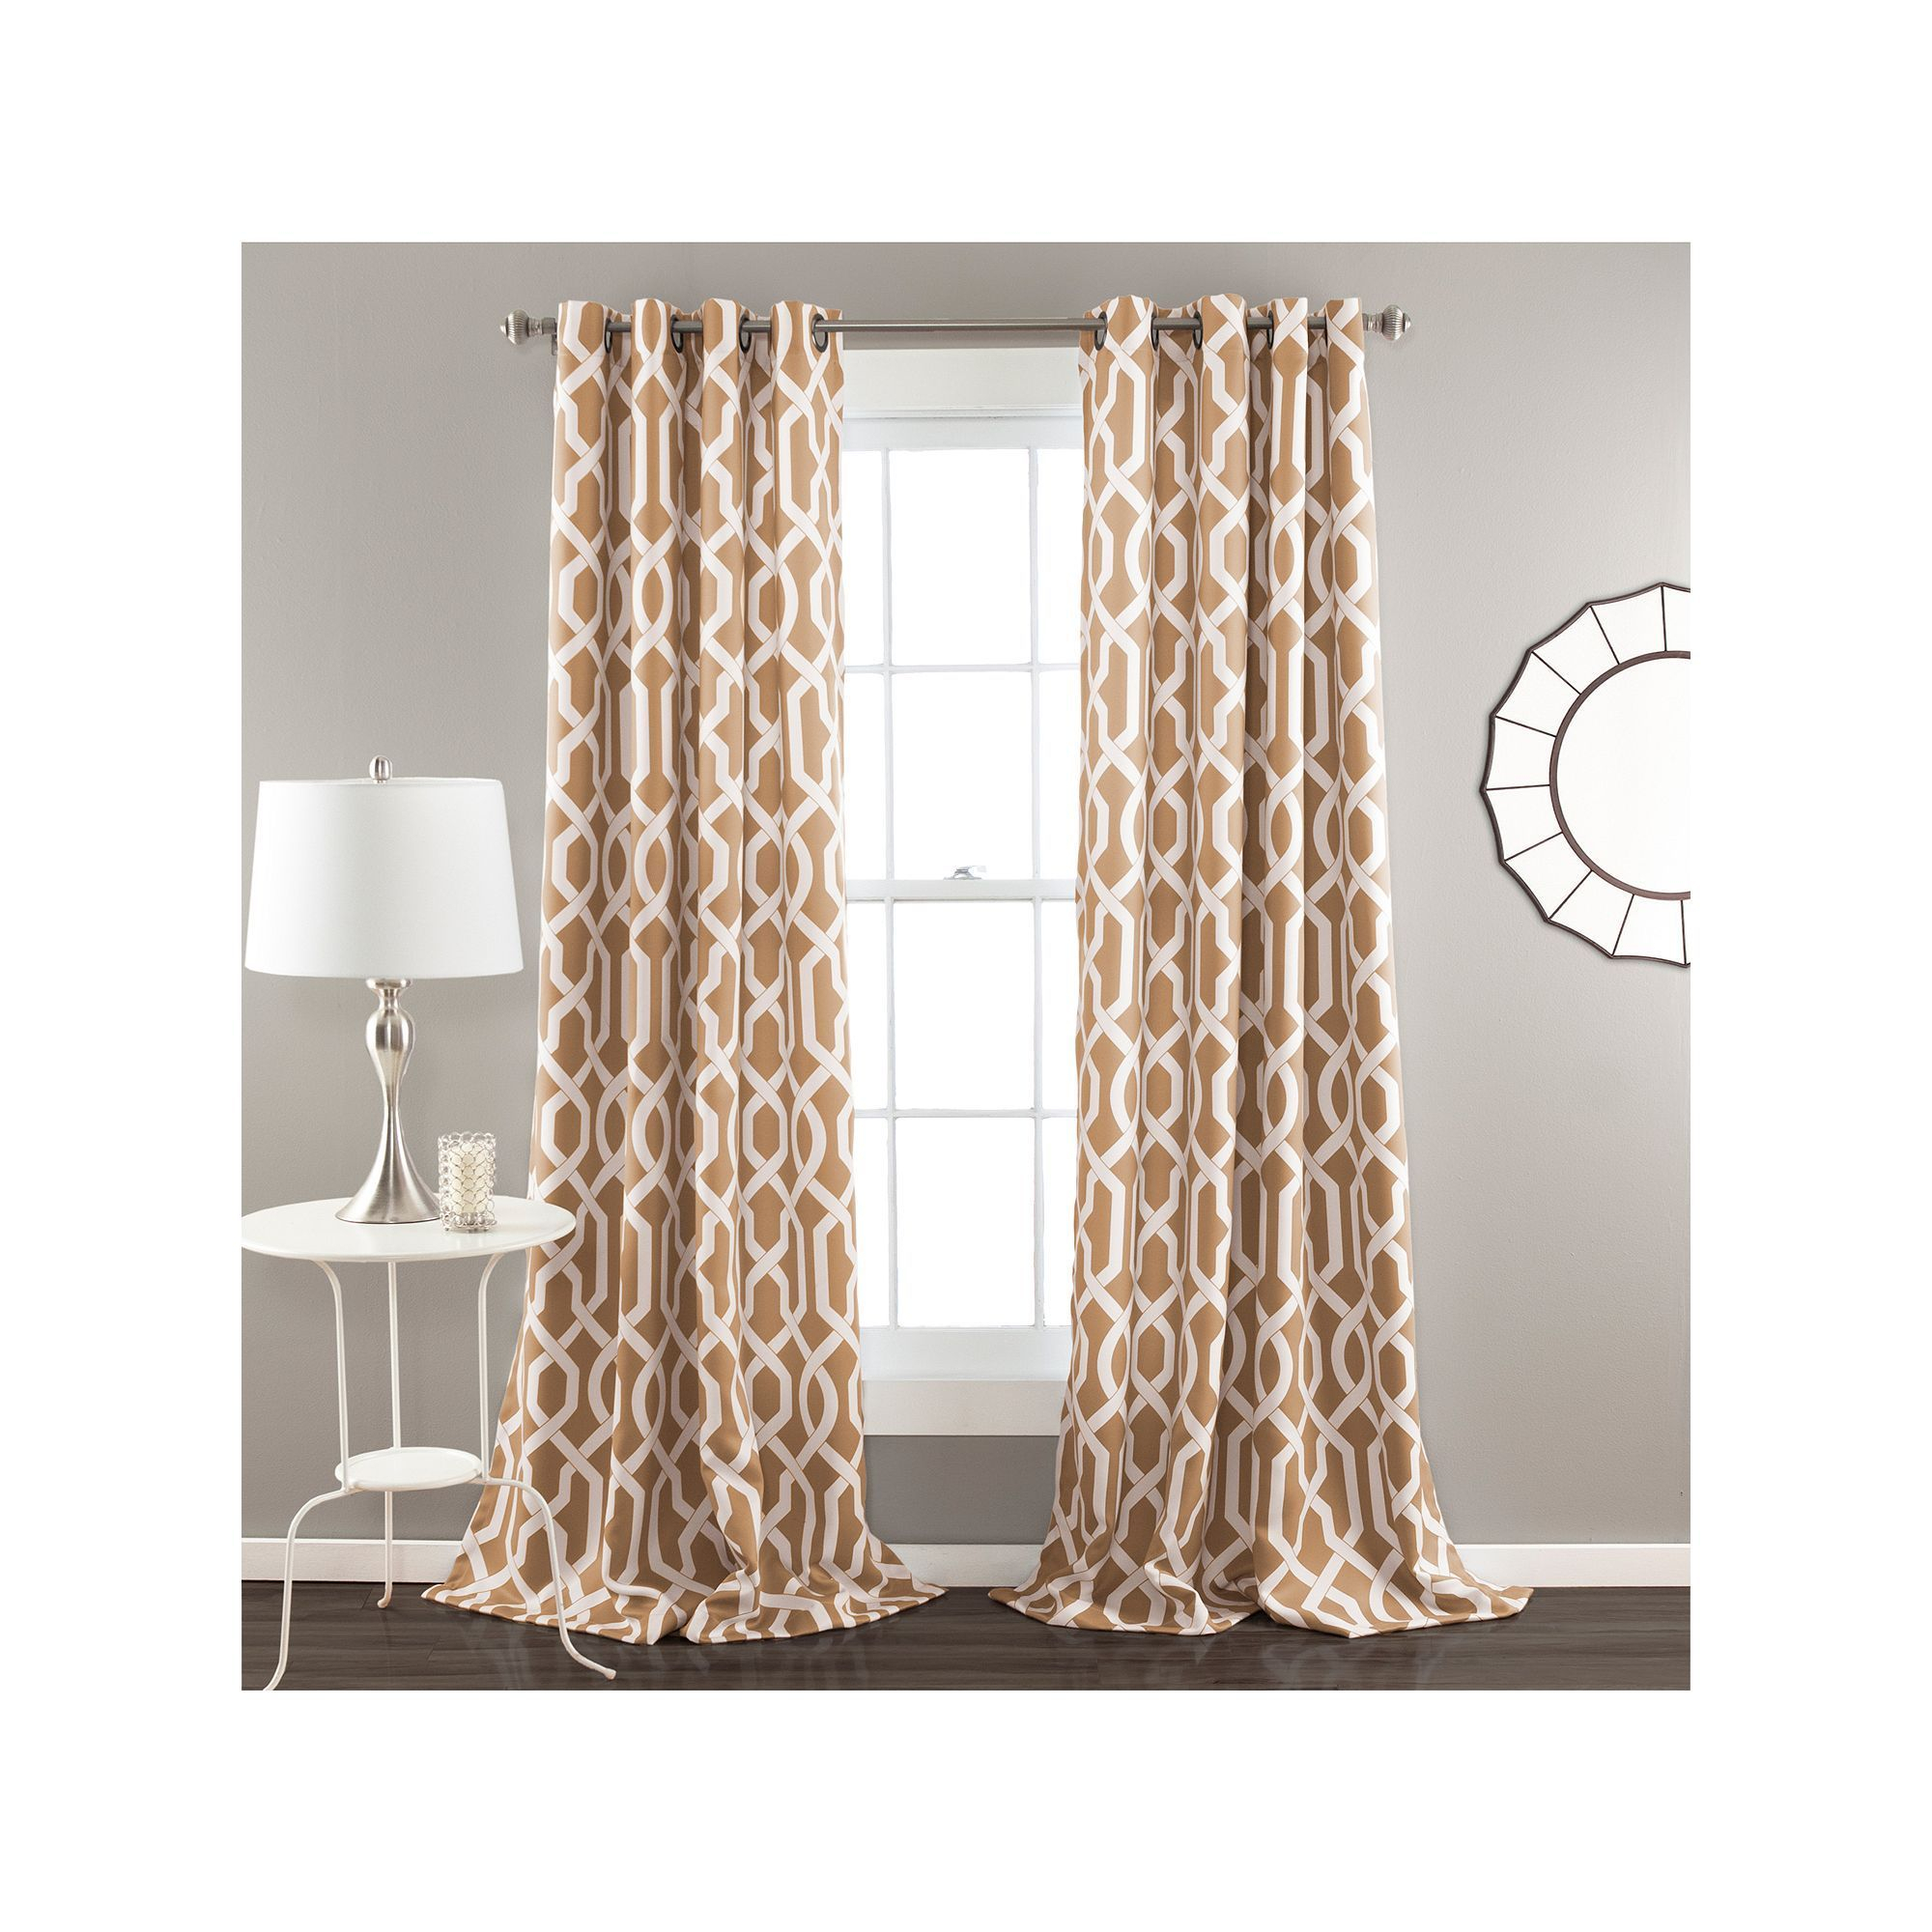 Lush Decor 2 Pack Edward Room Darkening Window Curtains Throughout Edward Moroccan Pattern Room Darkening Curtain Panel Pairs (View 11 of 20)